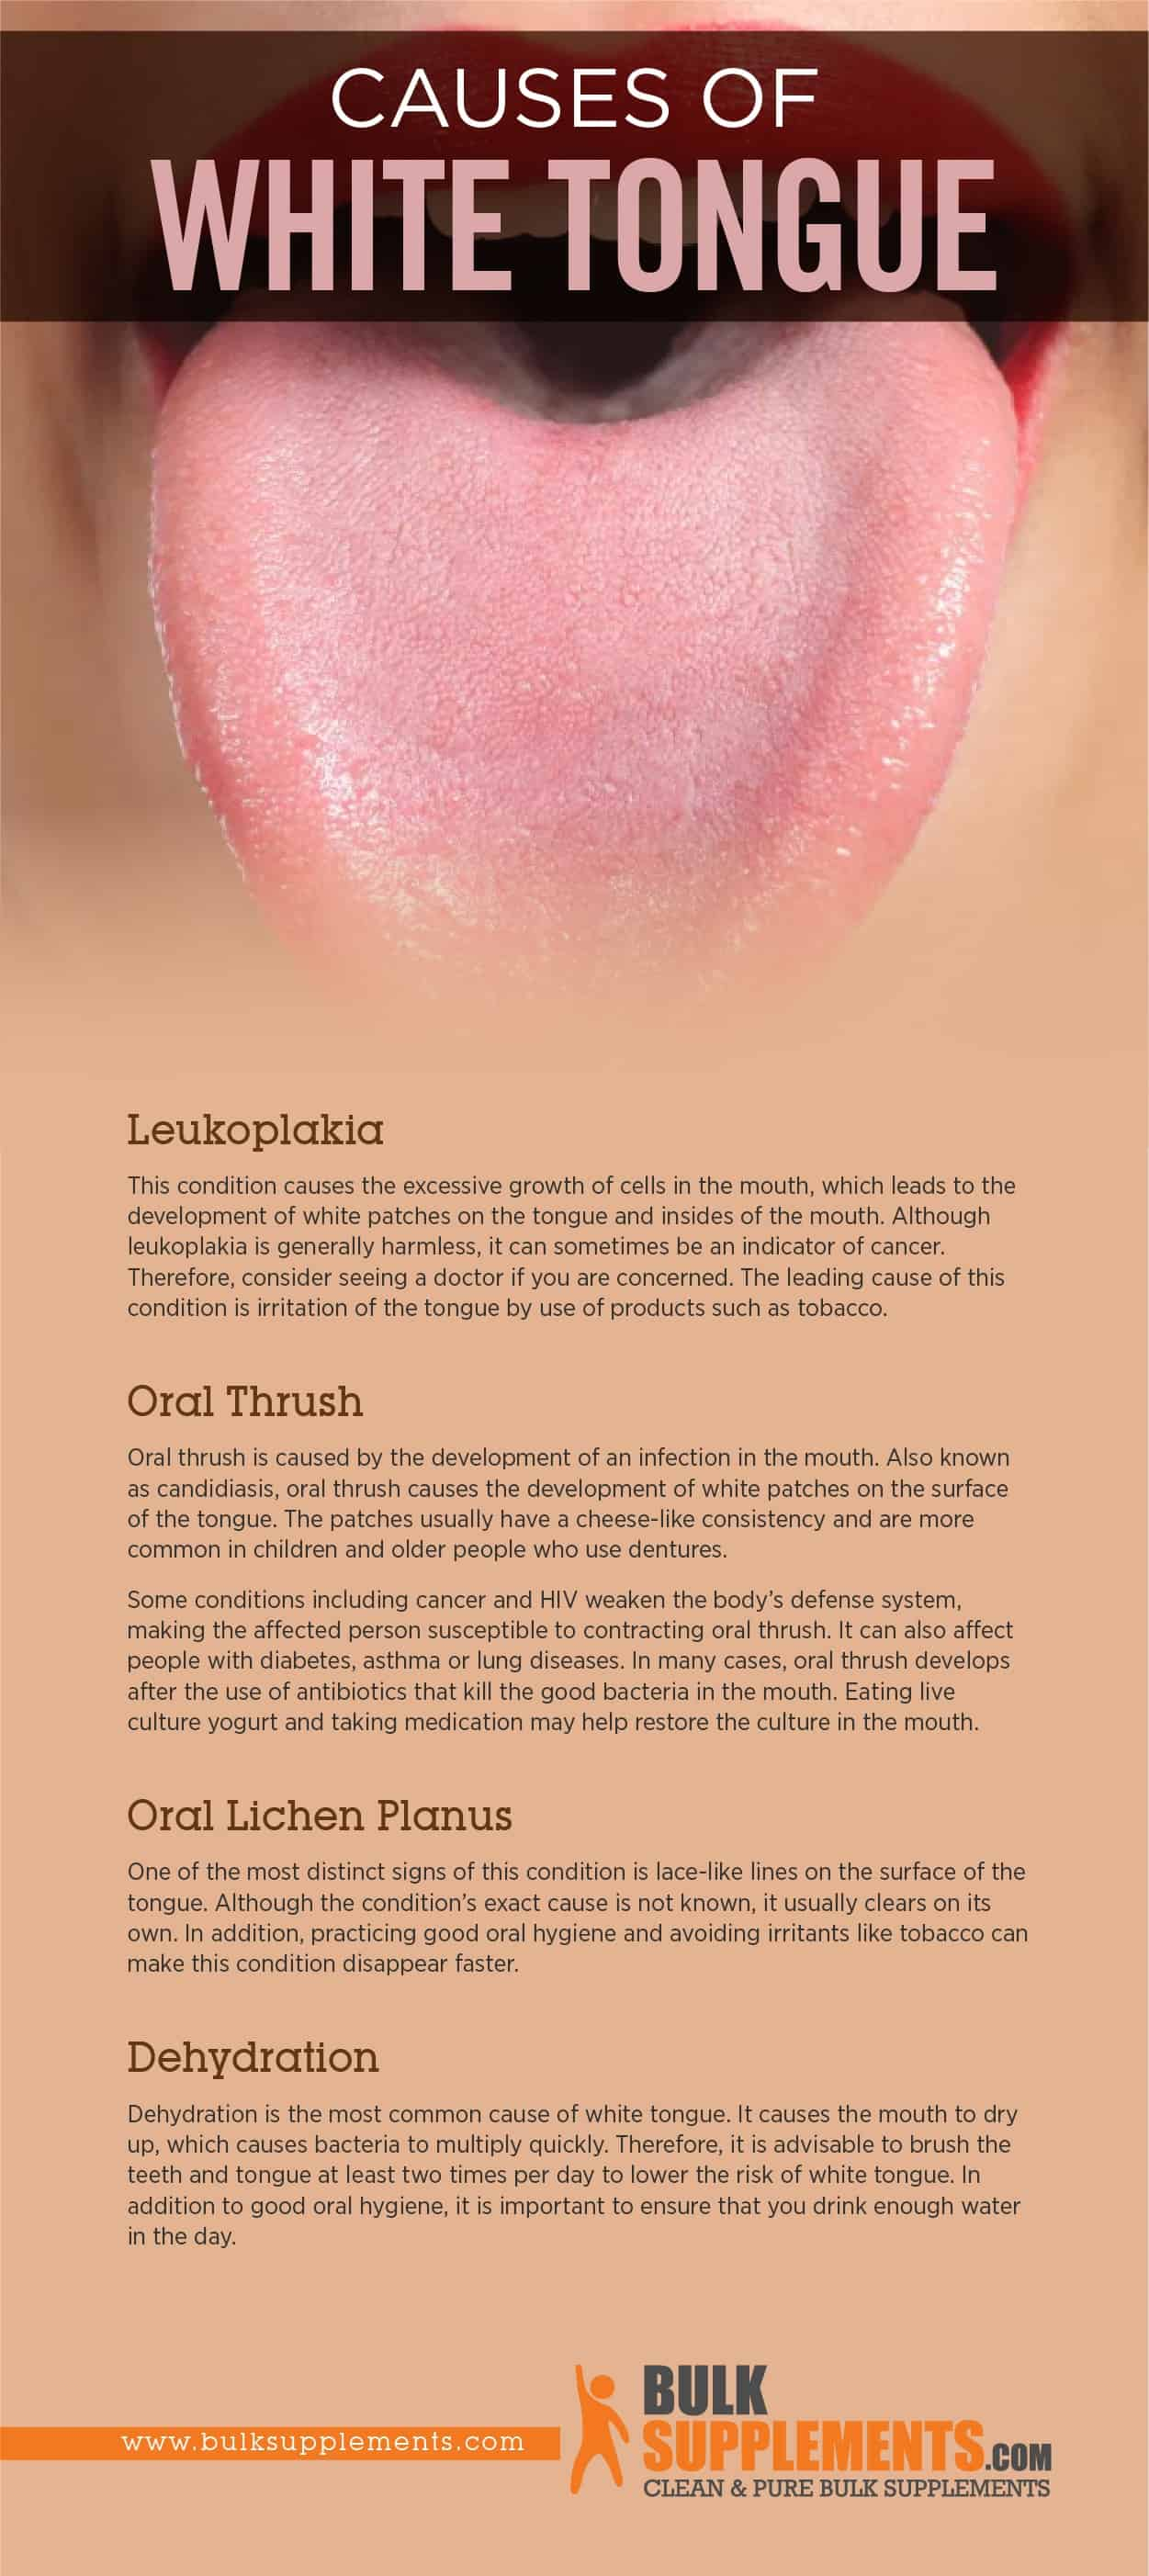 Causes of White Tongue